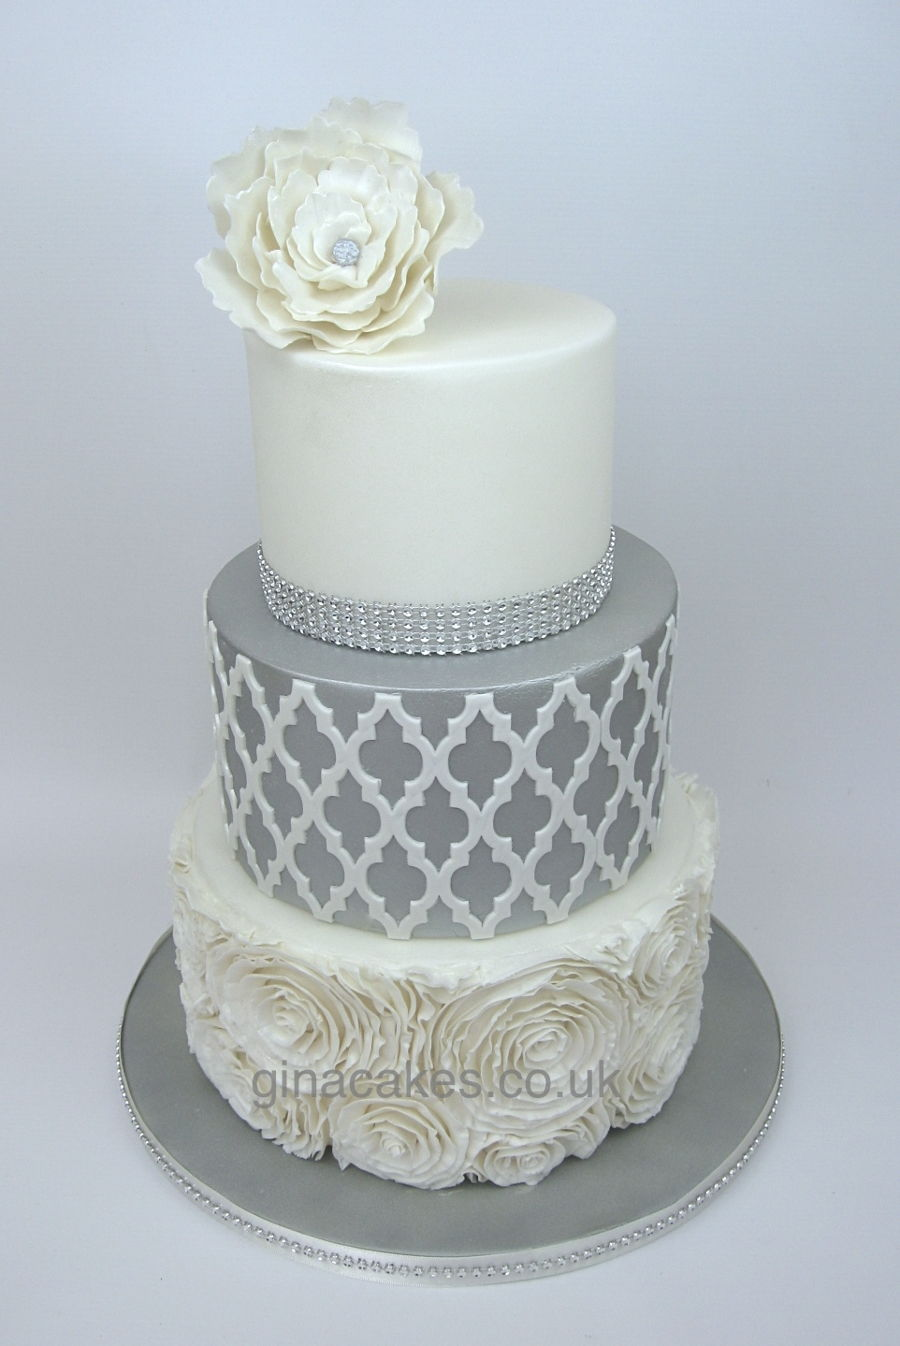 Silver Amp White Wedding Cake With Contrasting Onlay And